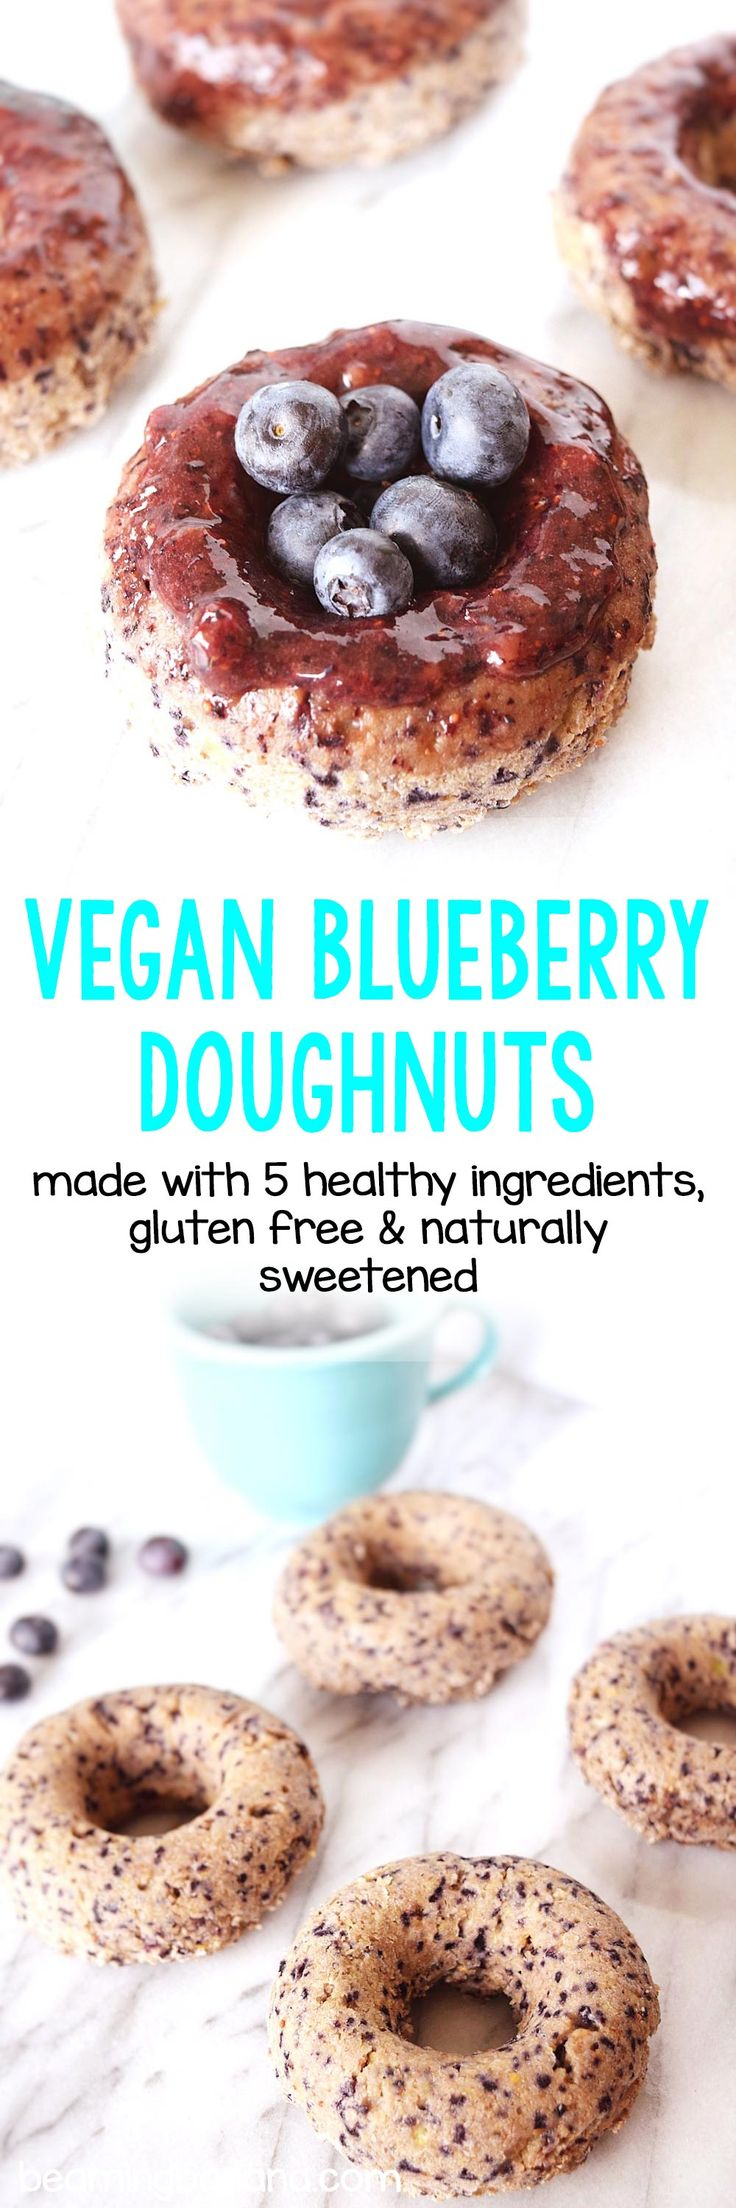 Soft, sweet vegan blueberry doughnuts are super easy to make and the perfect healthy treat for breakfast or dessert! These doughnuts are gluten free and naturally sweetened.